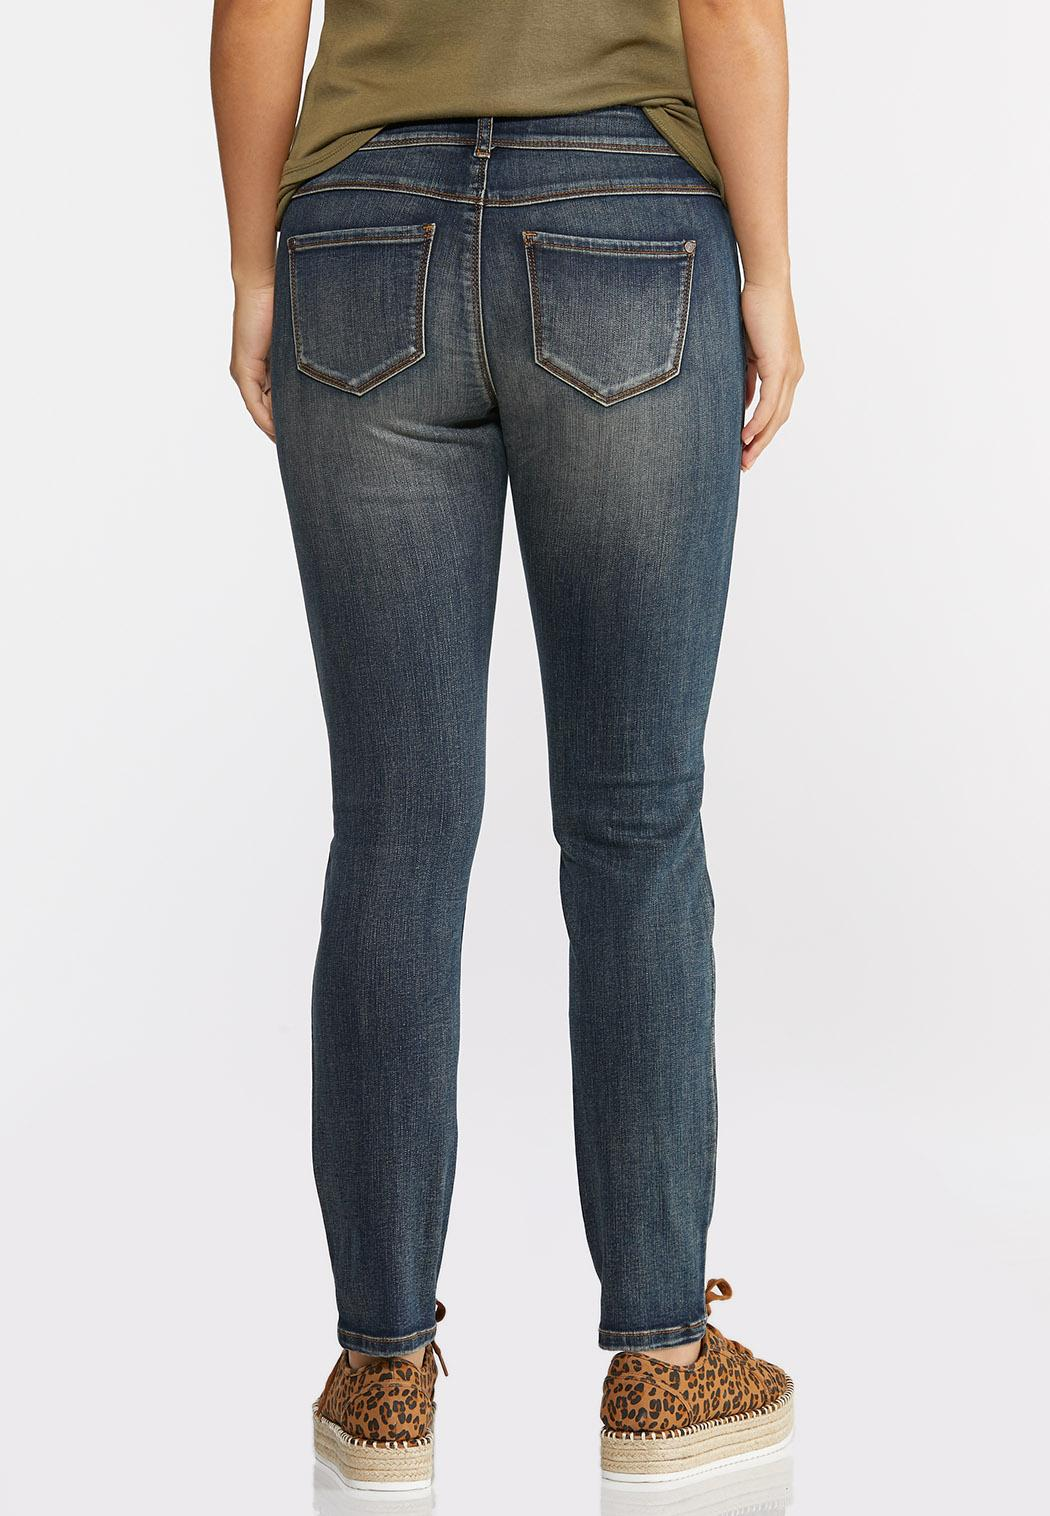 Mid-Rise Skinny Jeans (Item #44348321)